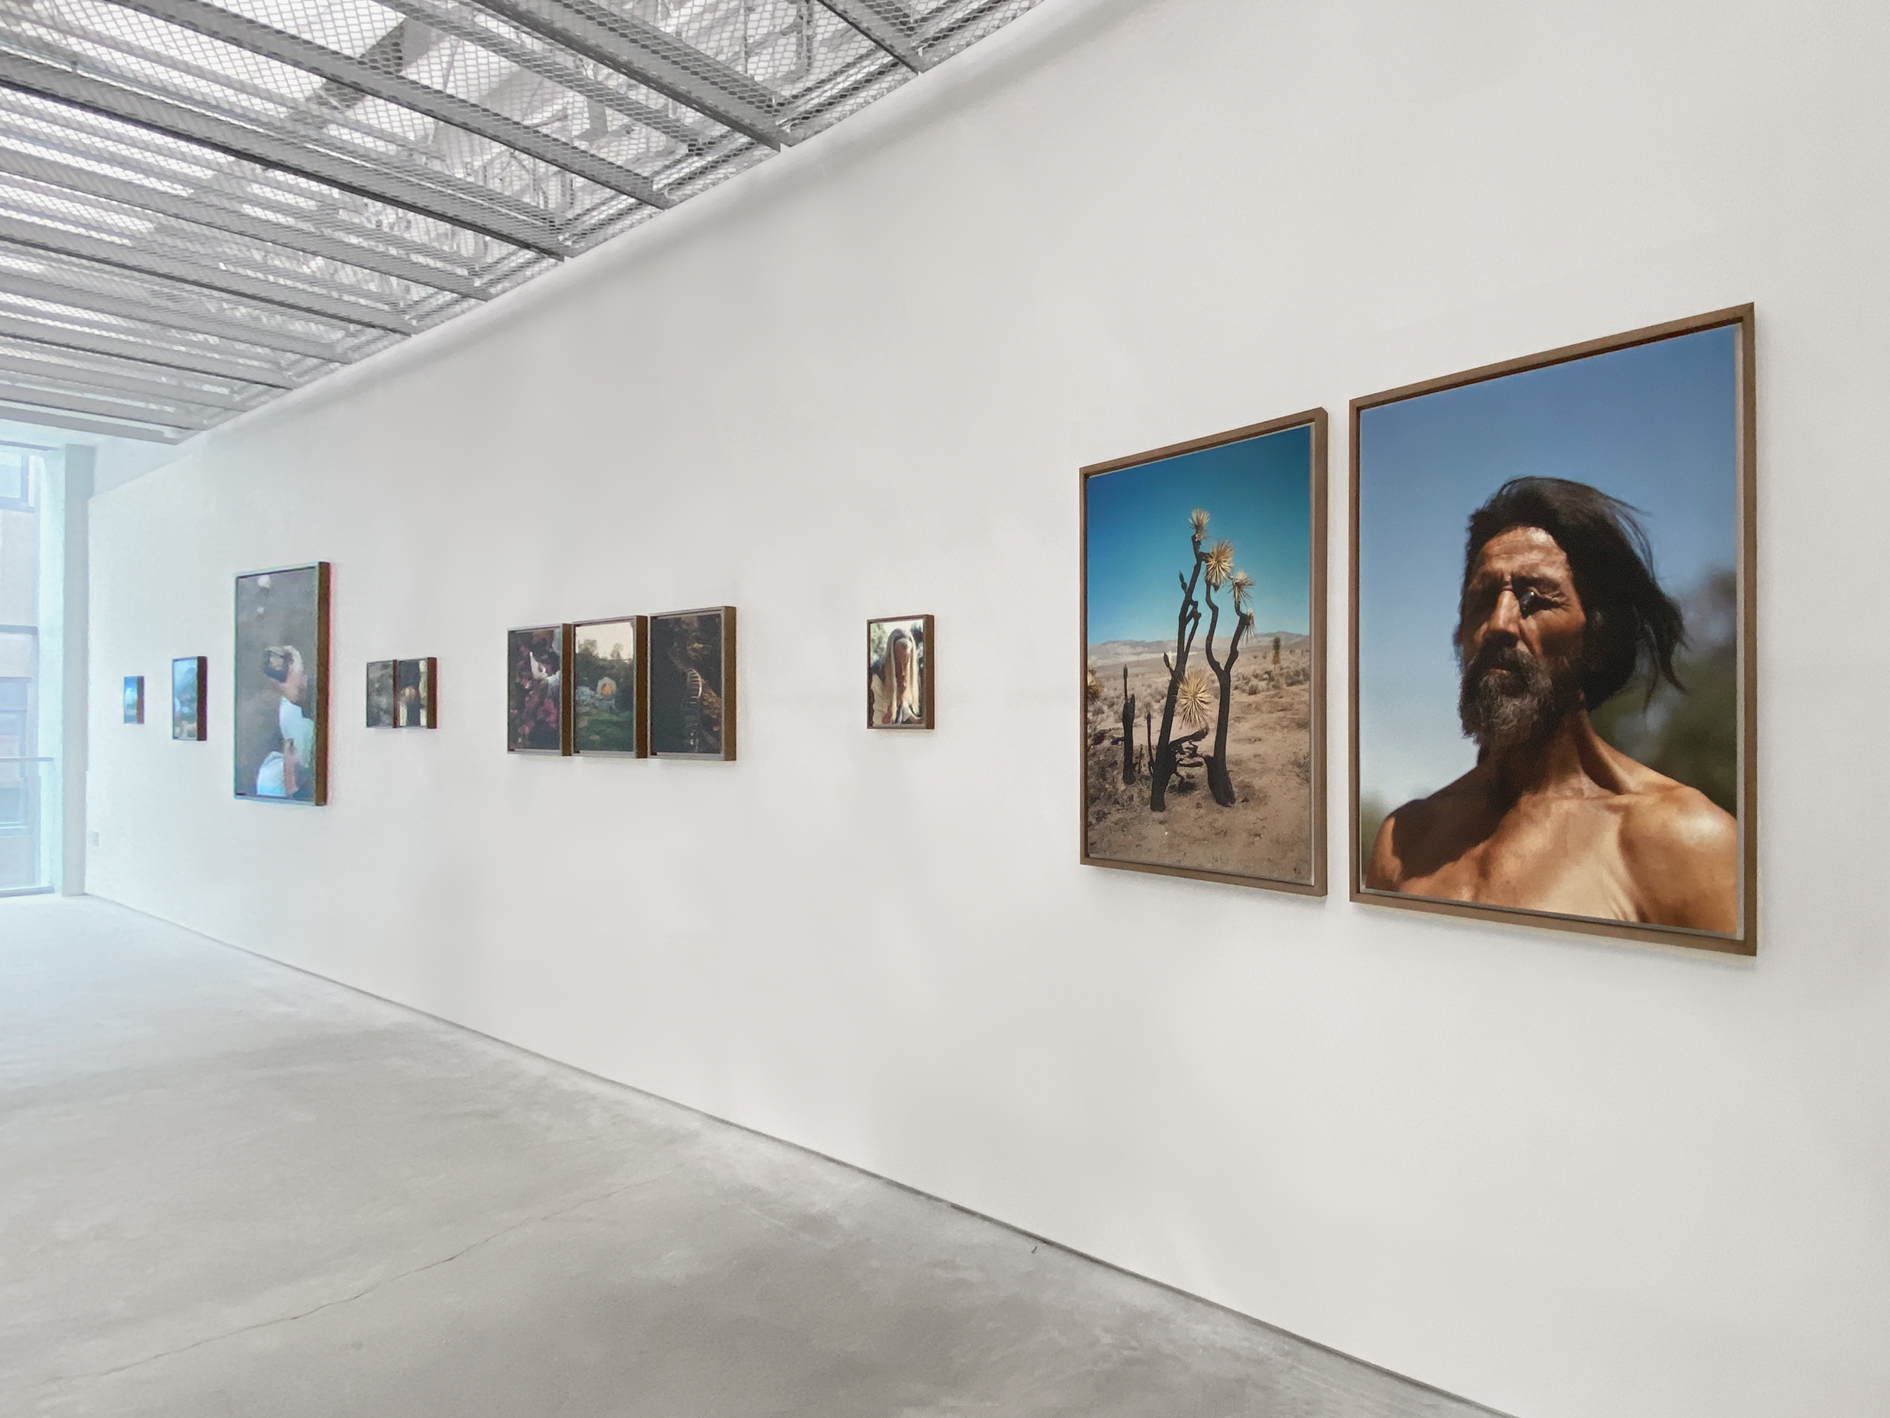 A grouping of photographs on a gallery wall by Greg Halpern.